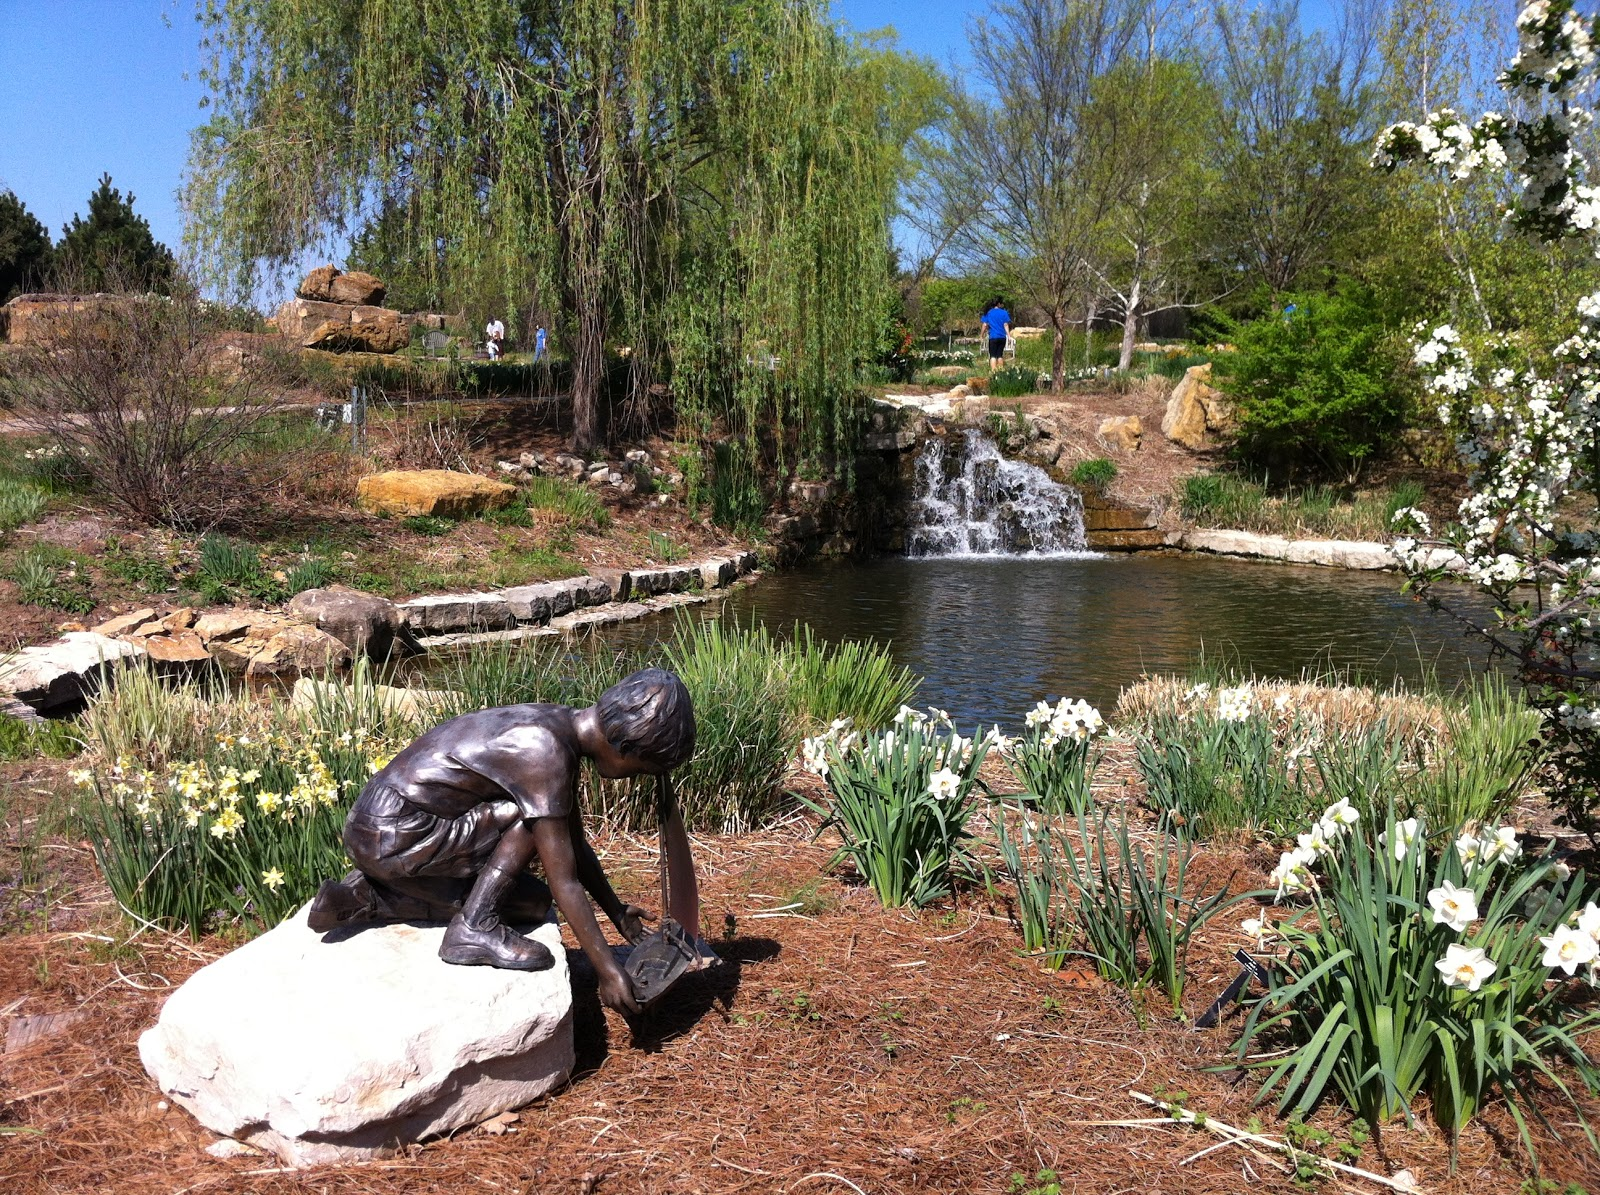 The Brighter Writer: The Overland Park Arboretum and Botanical Gardens